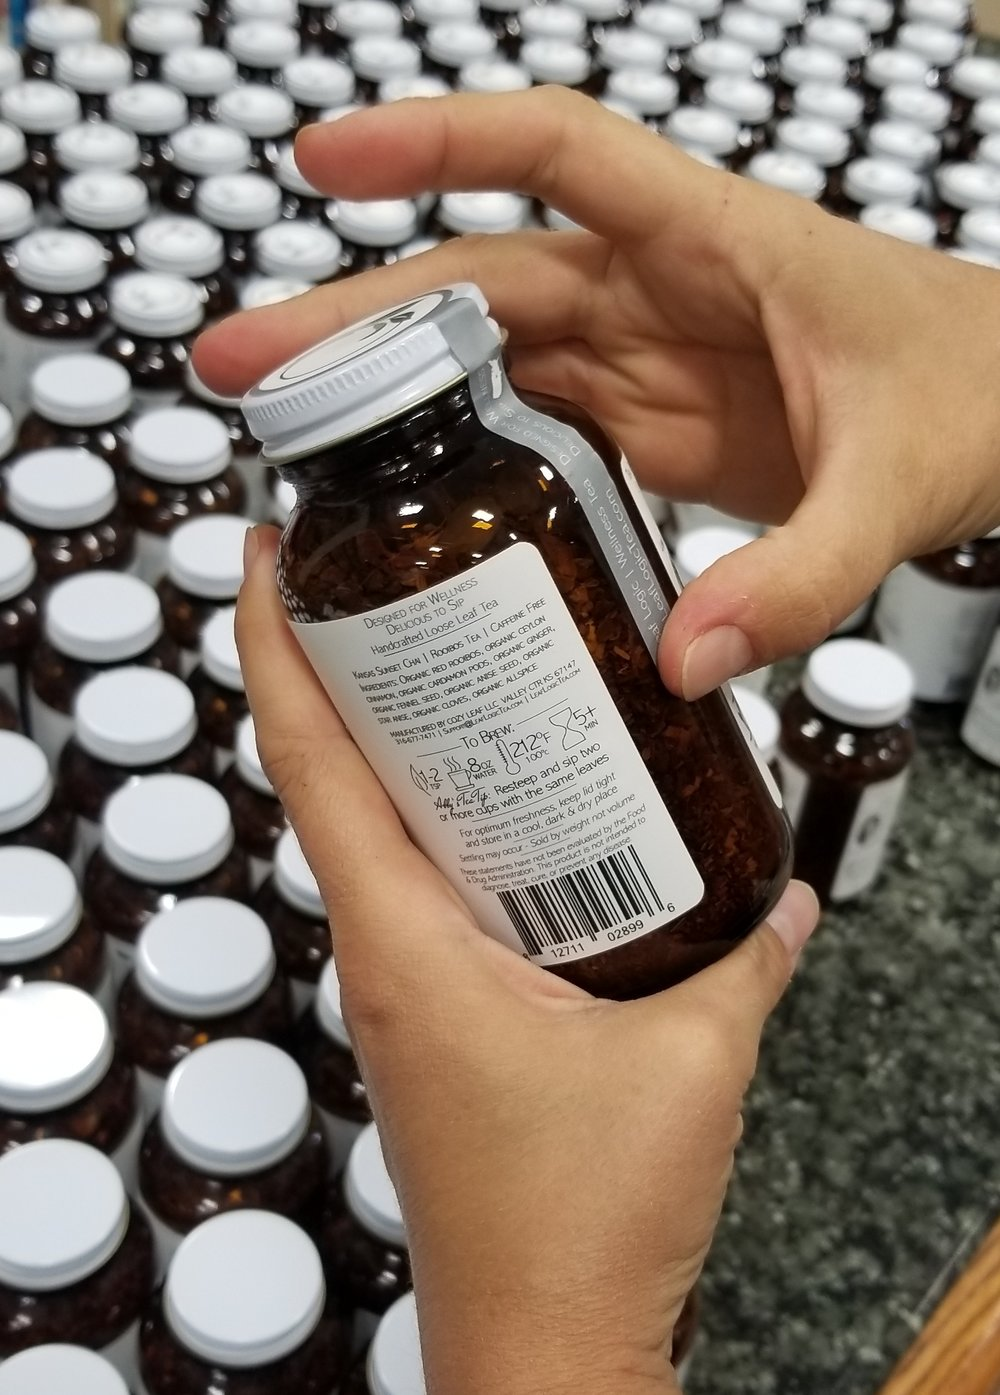 Leaf Logic Jar Packaging by hand.jpg